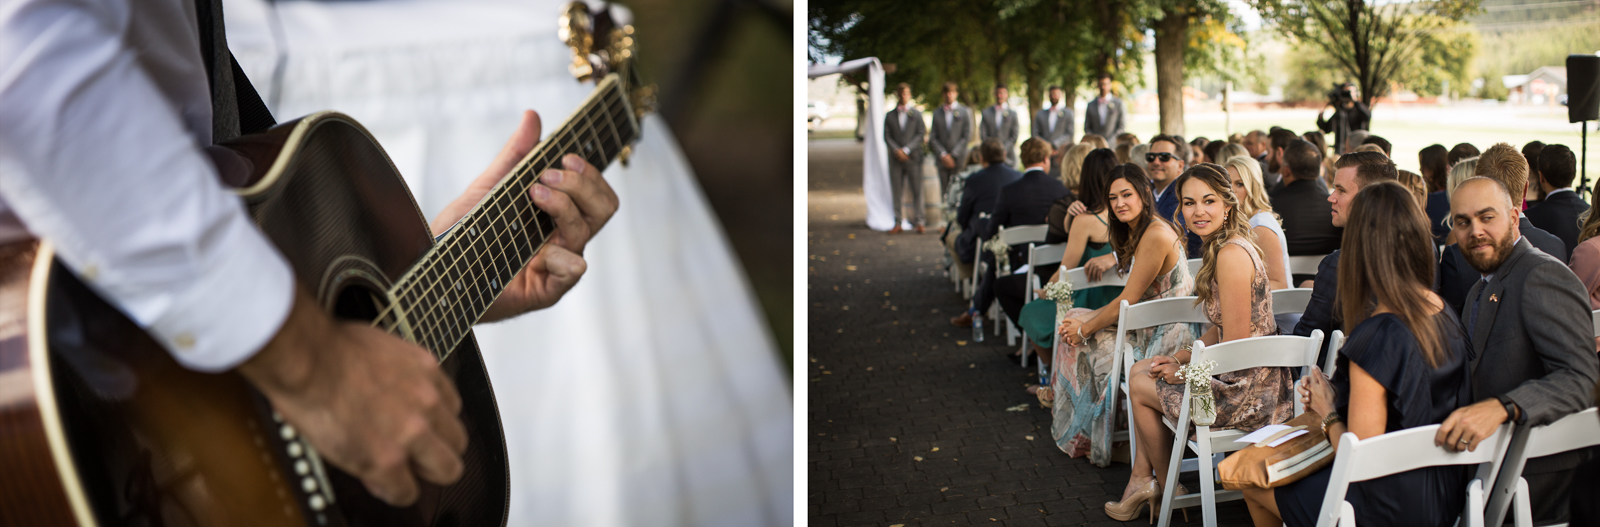 26-willow_and_wolf_photography_nicole_and_gary_cranbrook_wedding_blog